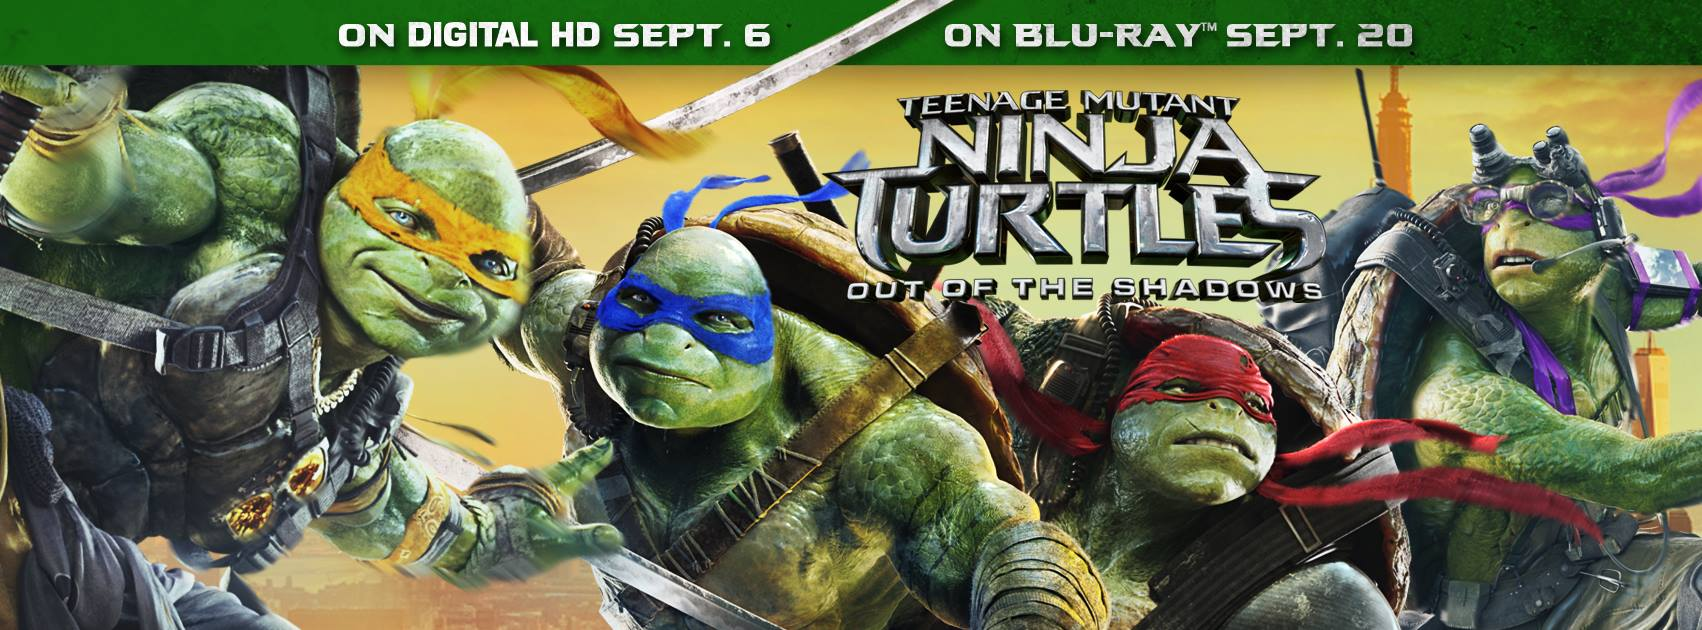 Enter To Win Teenage Mutant Ninja Turtles Out Of The Shadows Giveaway Esteeeatz Com